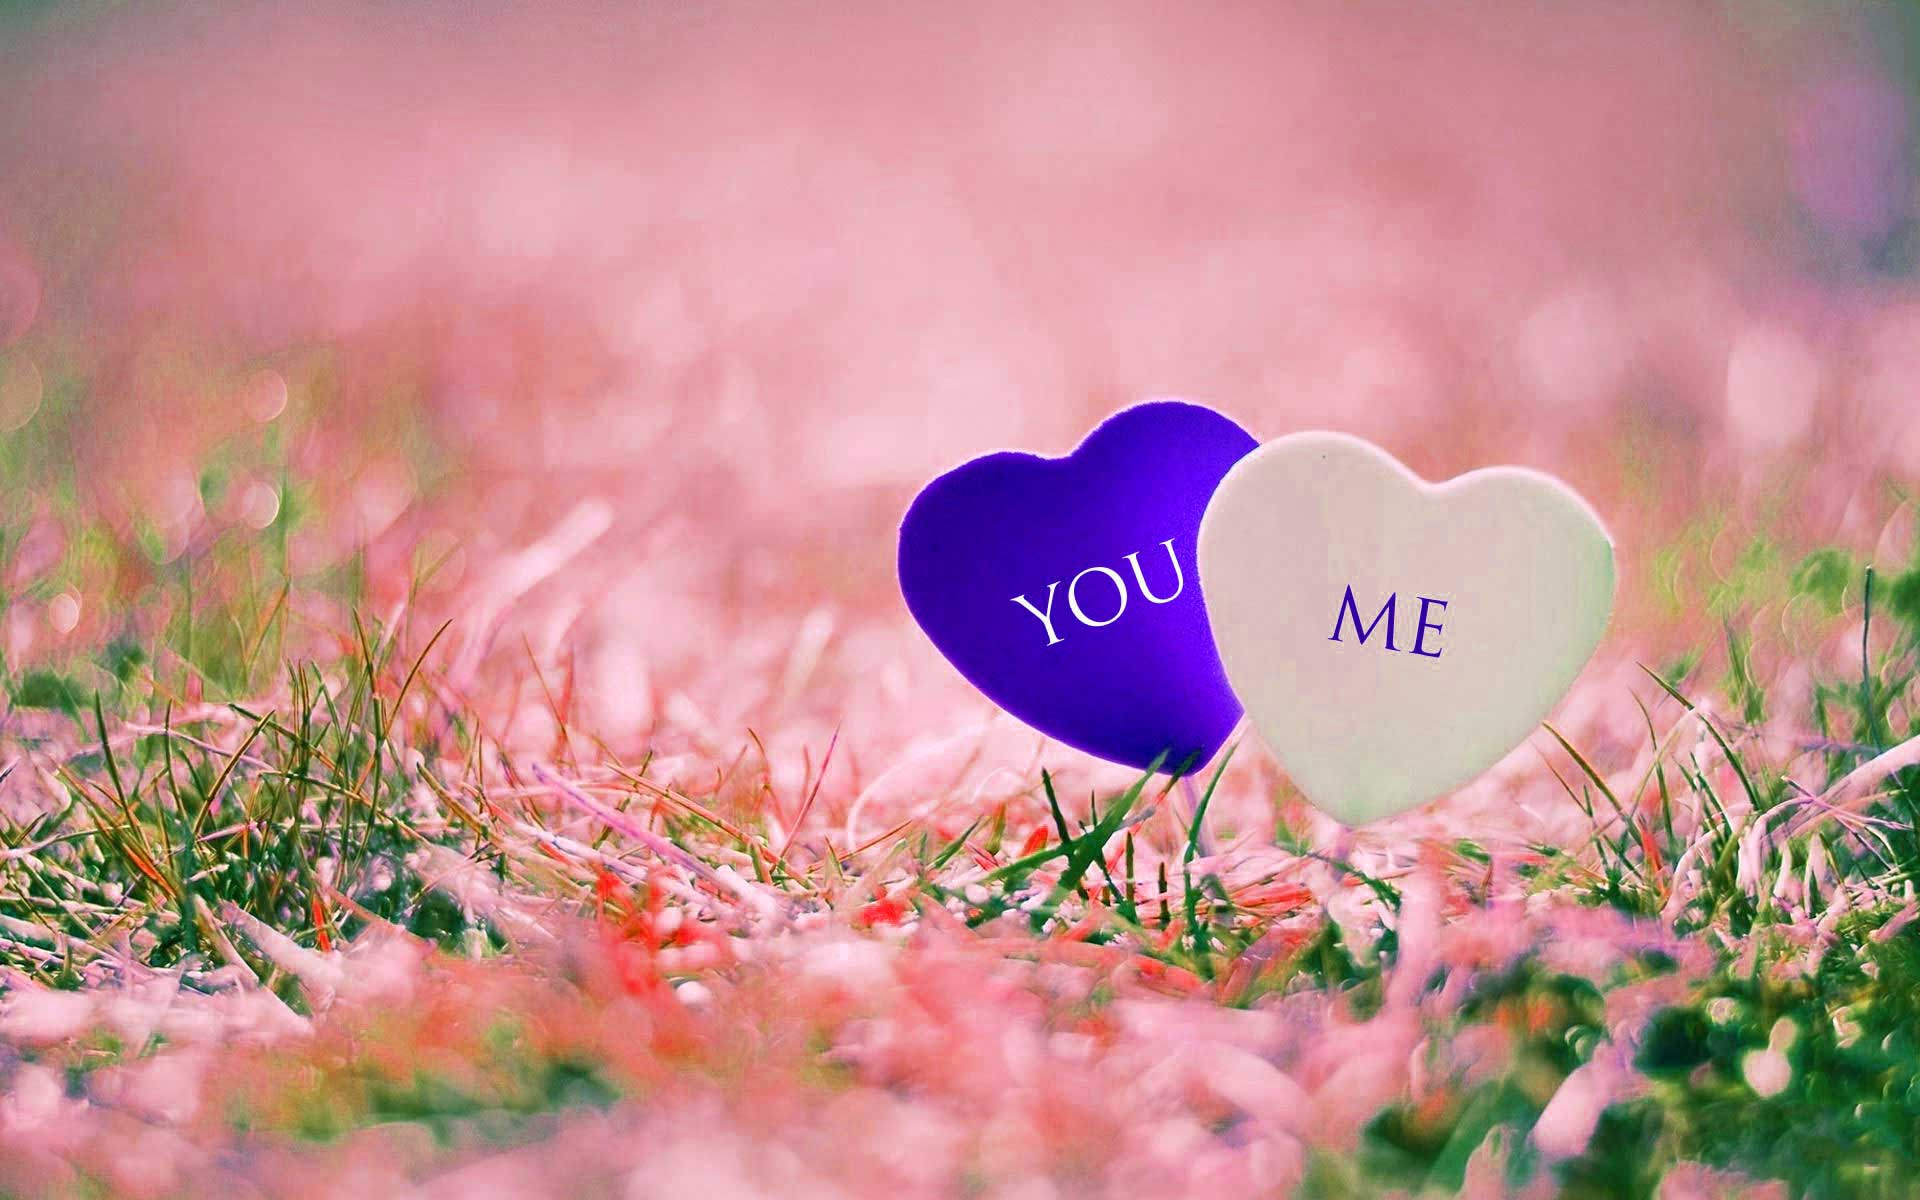 I Love You Images Photo Pics Wallpaper Hd Free Download - Good Morning Love Images Hd , HD Wallpaper & Backgrounds